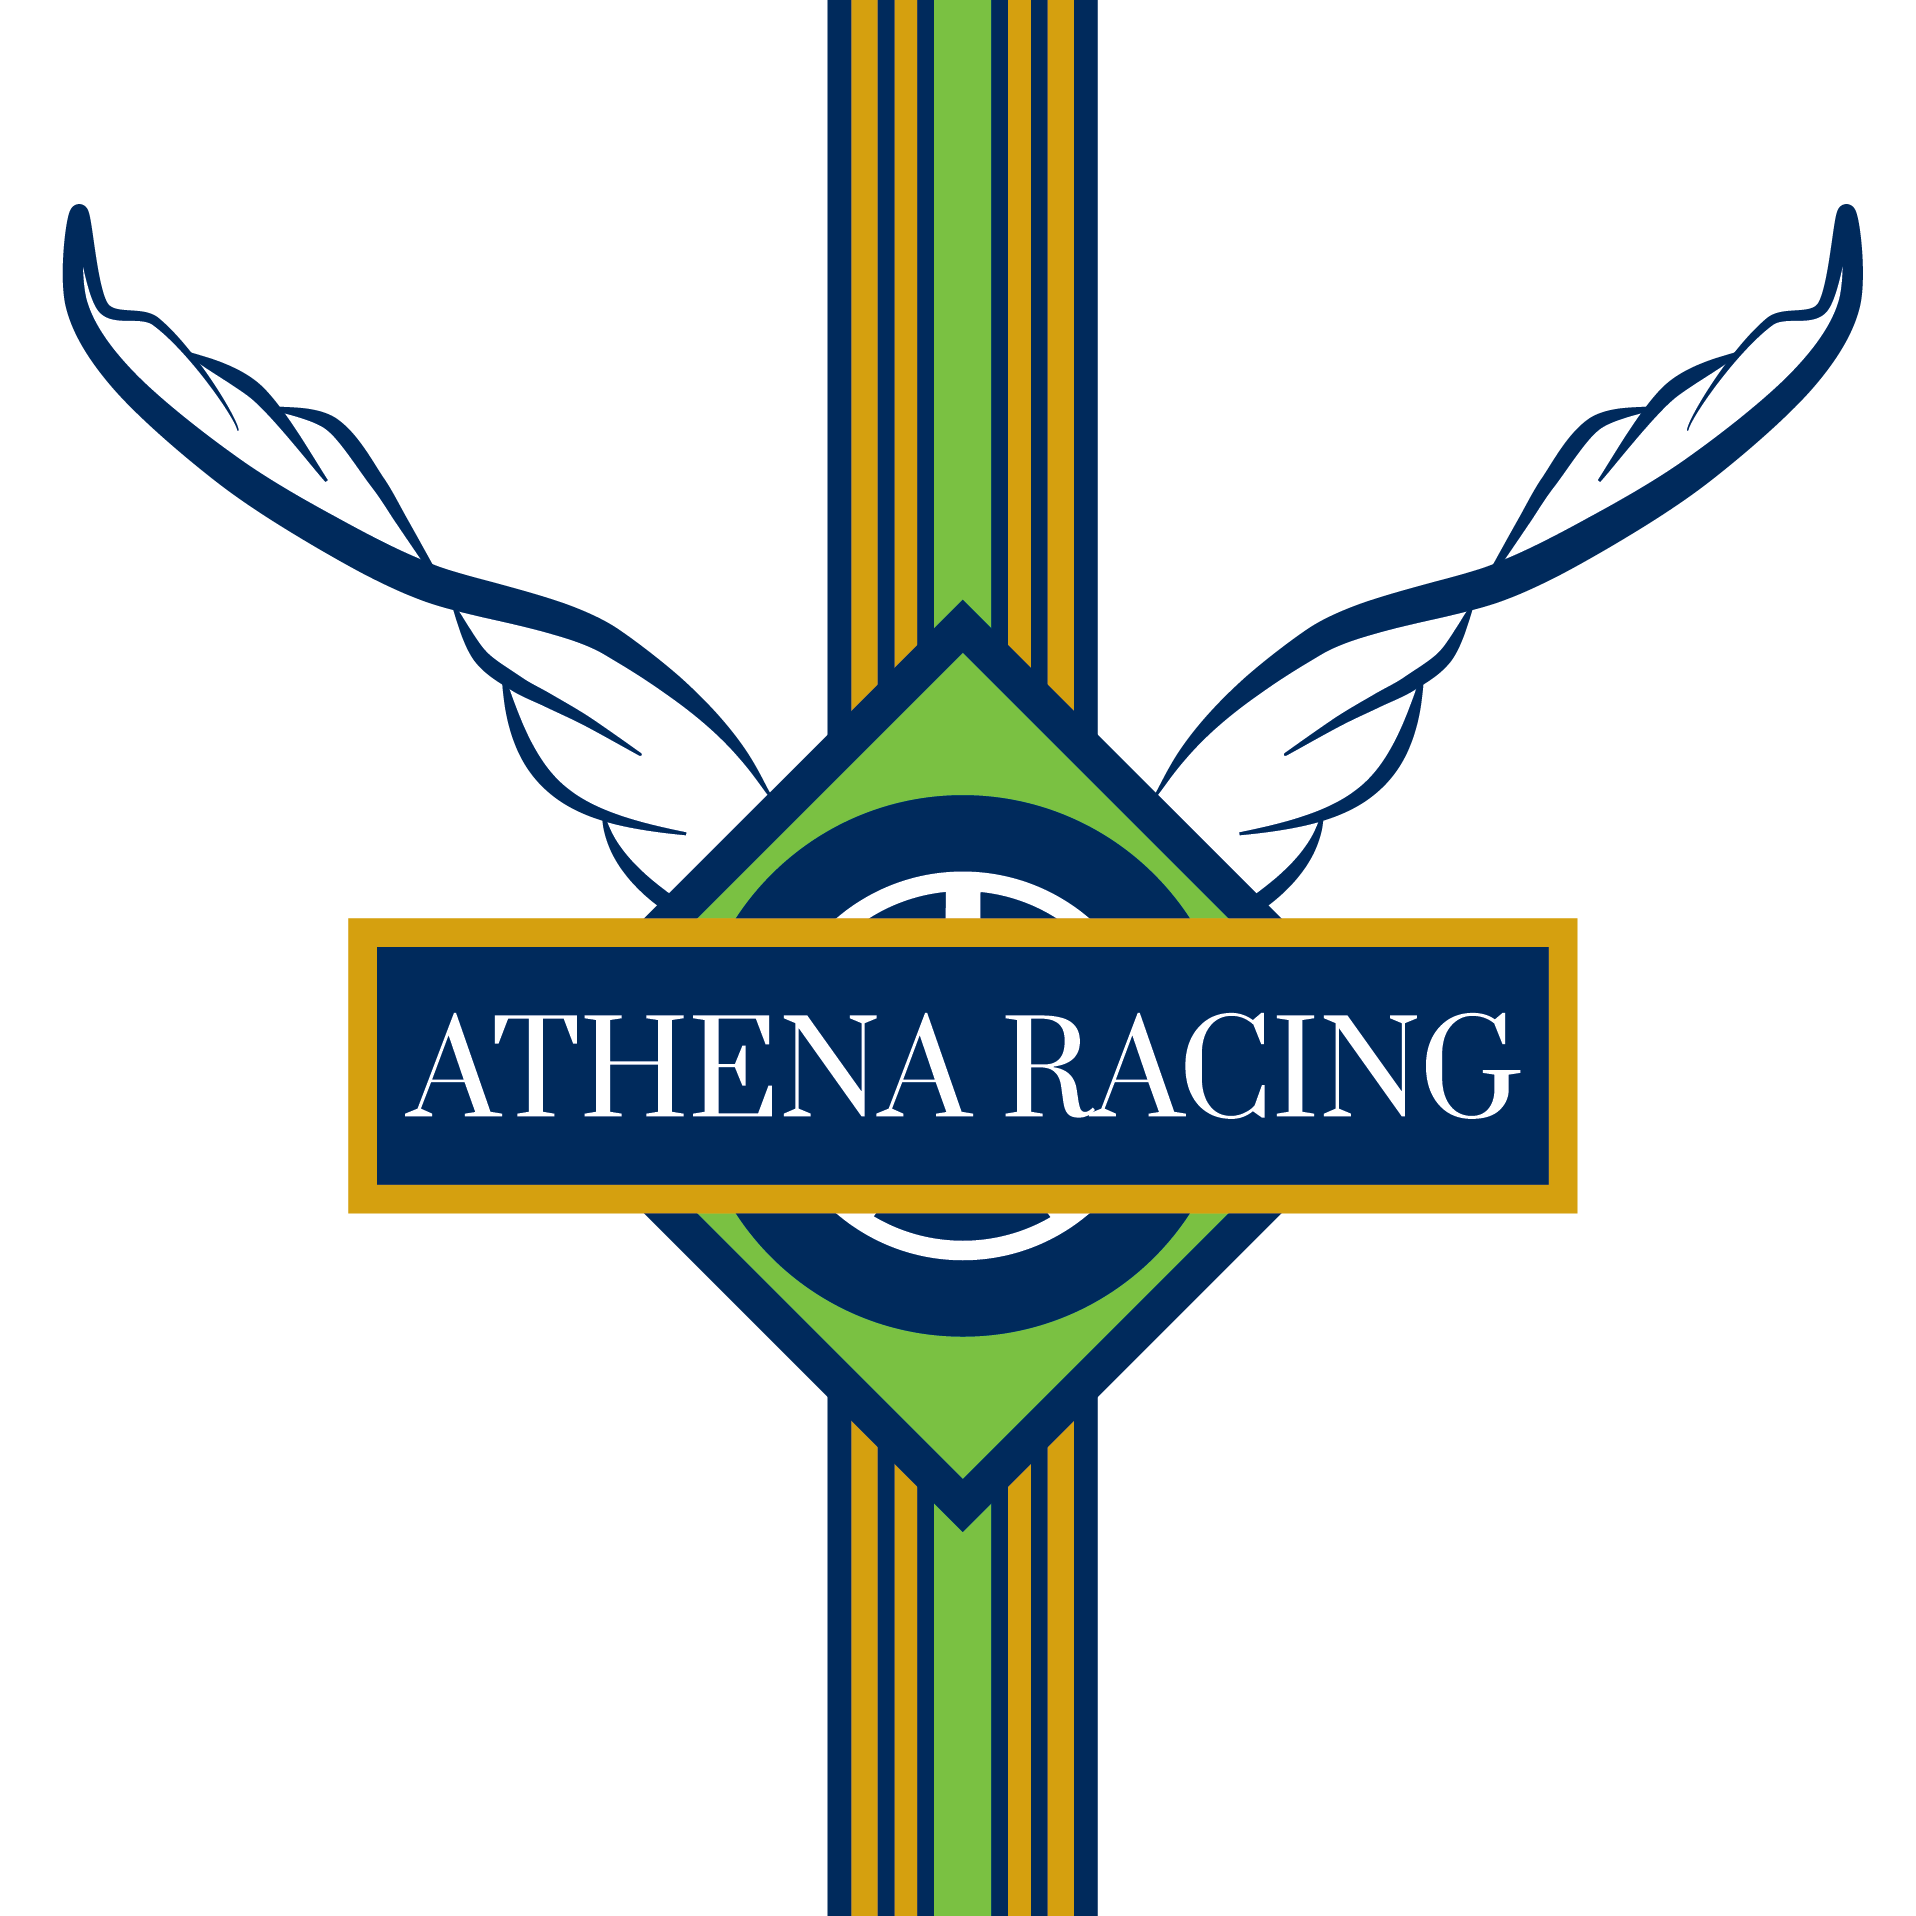 Athena Racing STEM Education Program CEO & Founder Wins the Coveted Pinnacle Award as Service Provider